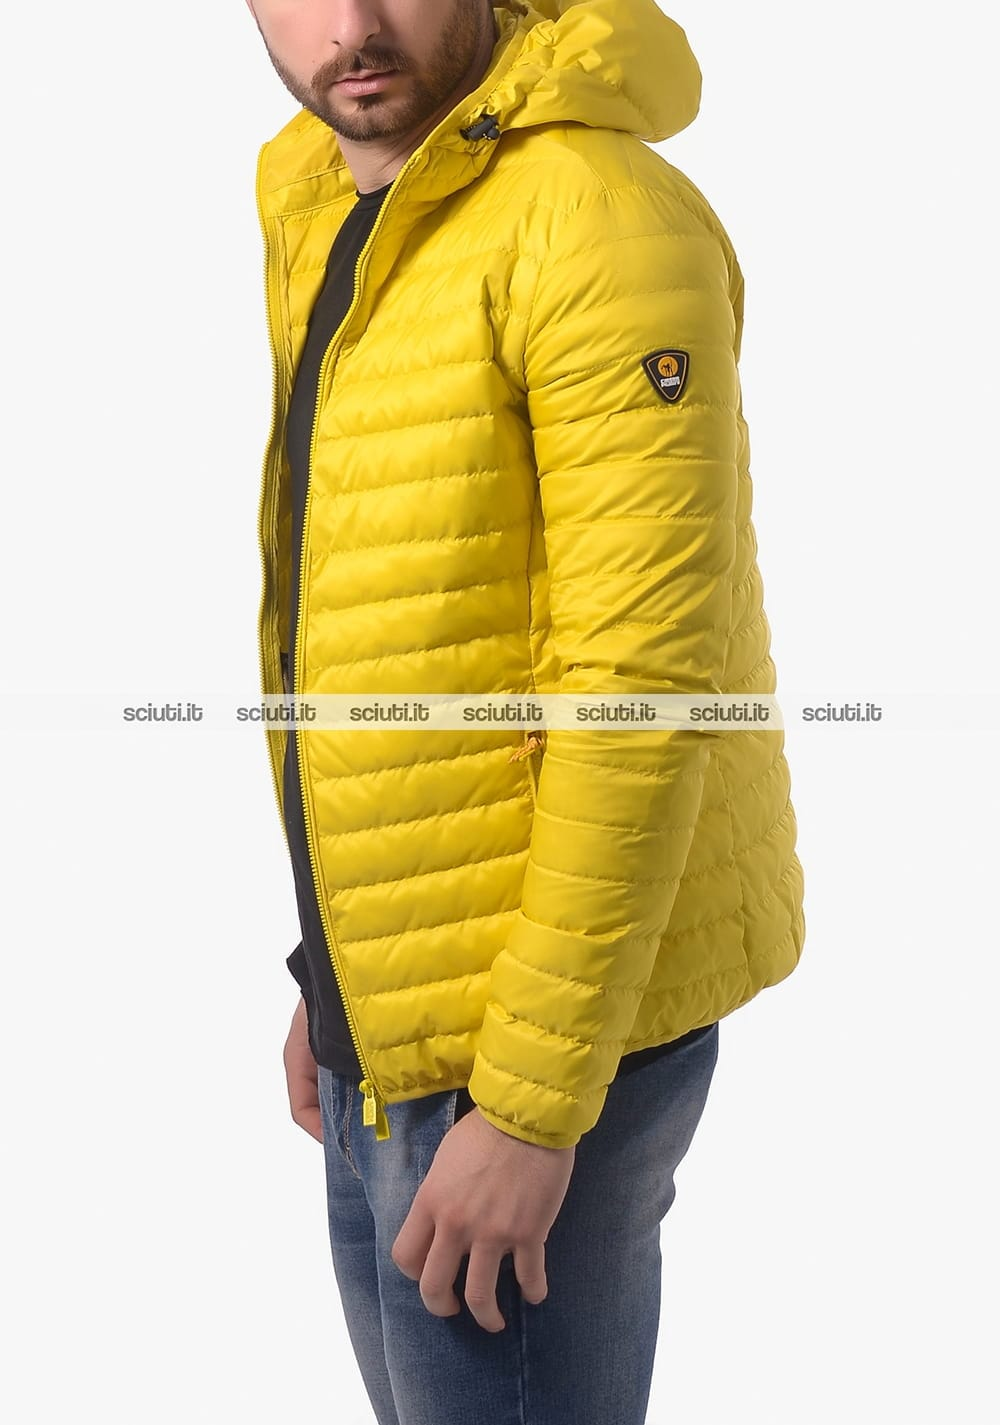 info for 89f61 d37b1 Piumino Ciesse uomo Larry con cappuccio giallo | Sciuti.it